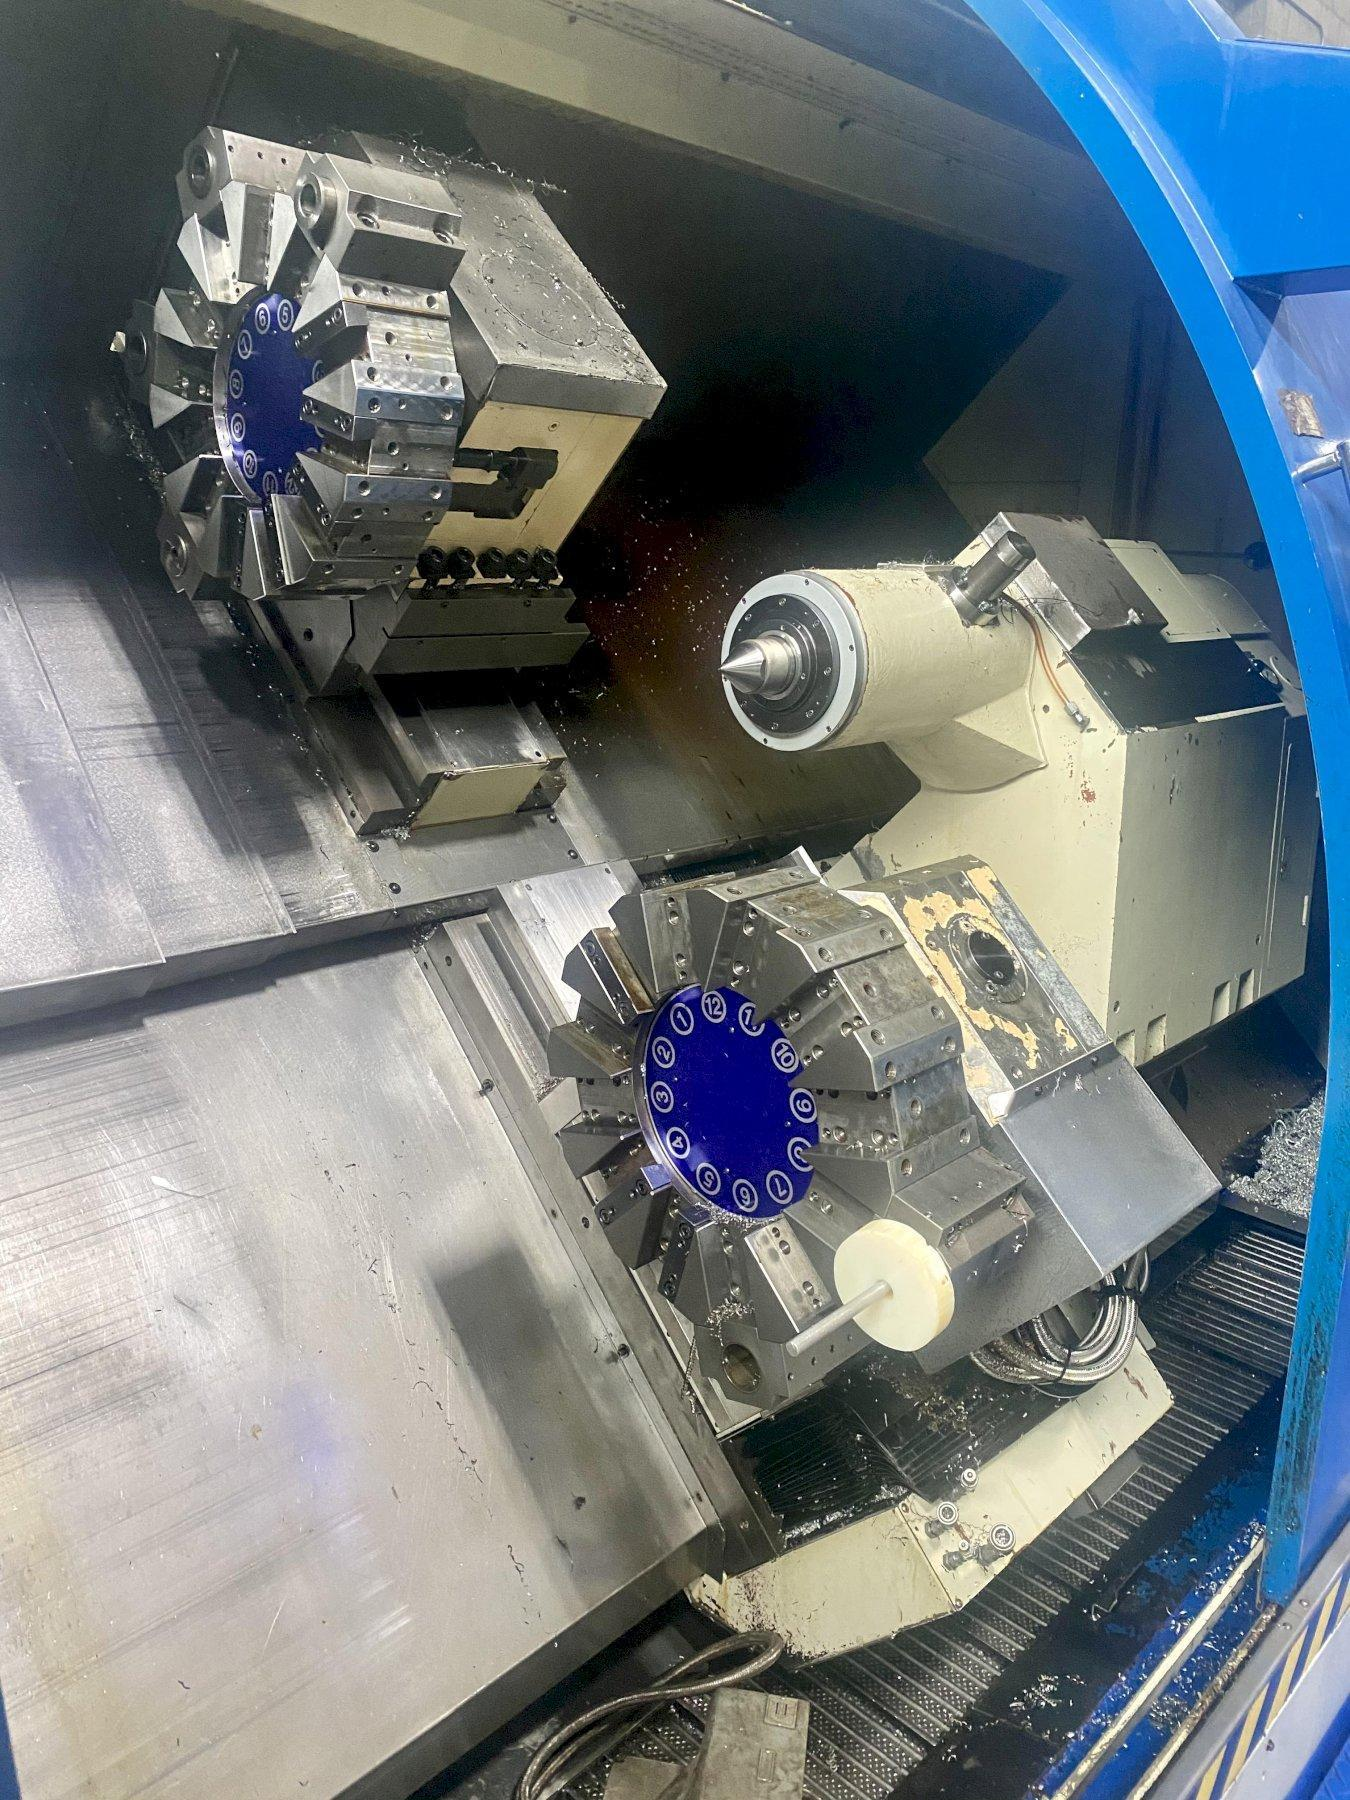 """JOHNFORD HT-40A-2D 4-AXIS CNC TURNING CENTER, Fanuc 18T CNC Control, 29.5"""" Swing, 12"""" 3-Jaw Chuck, 40"""" Between Centers, (2) 12 Position Turrets, 4"""" Spindle Bore, Chip Conveyor, New 2005."""